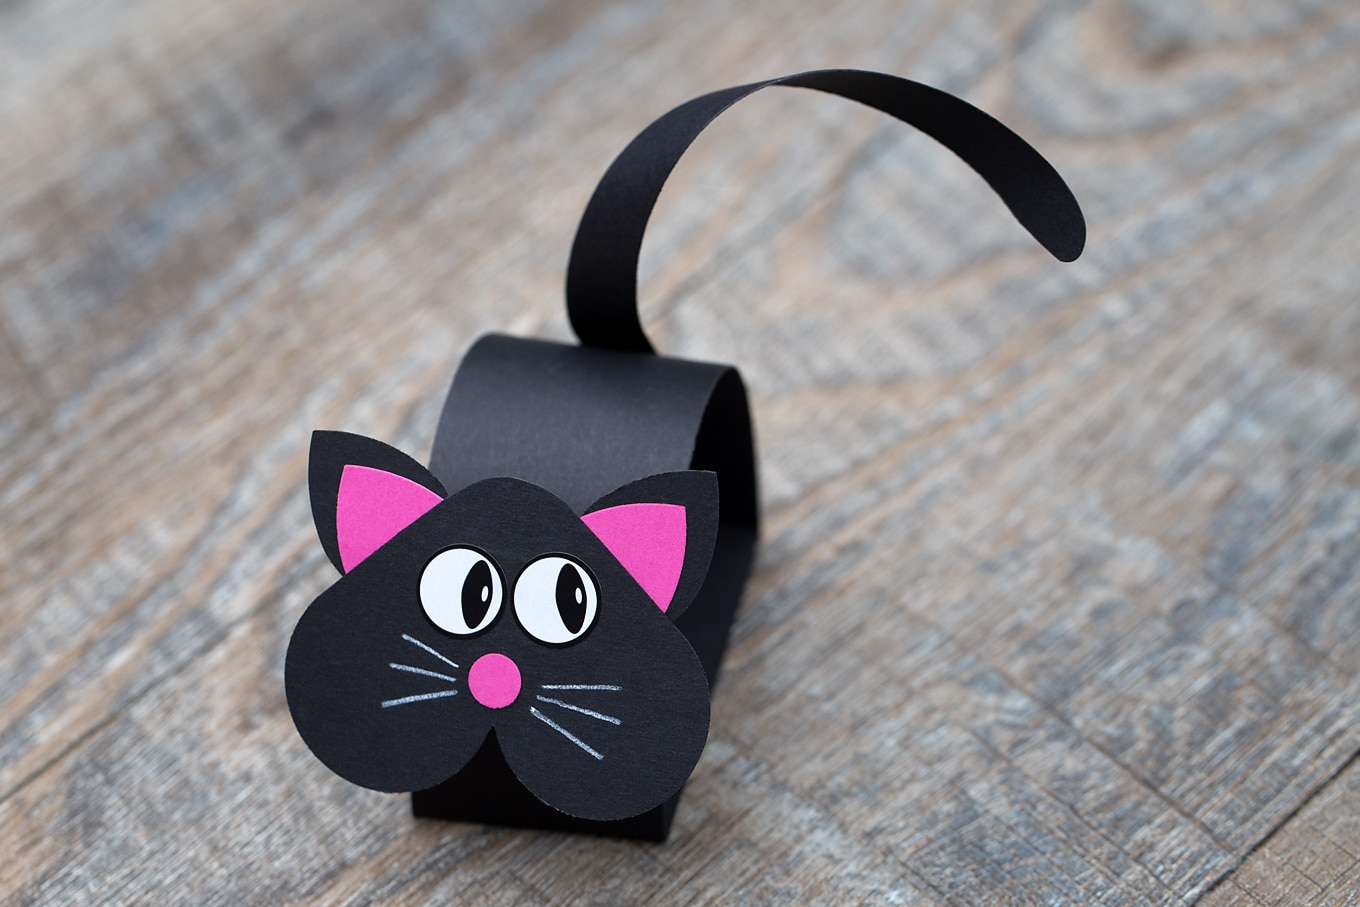 Learn how to Make a Paper Black Cat Craft